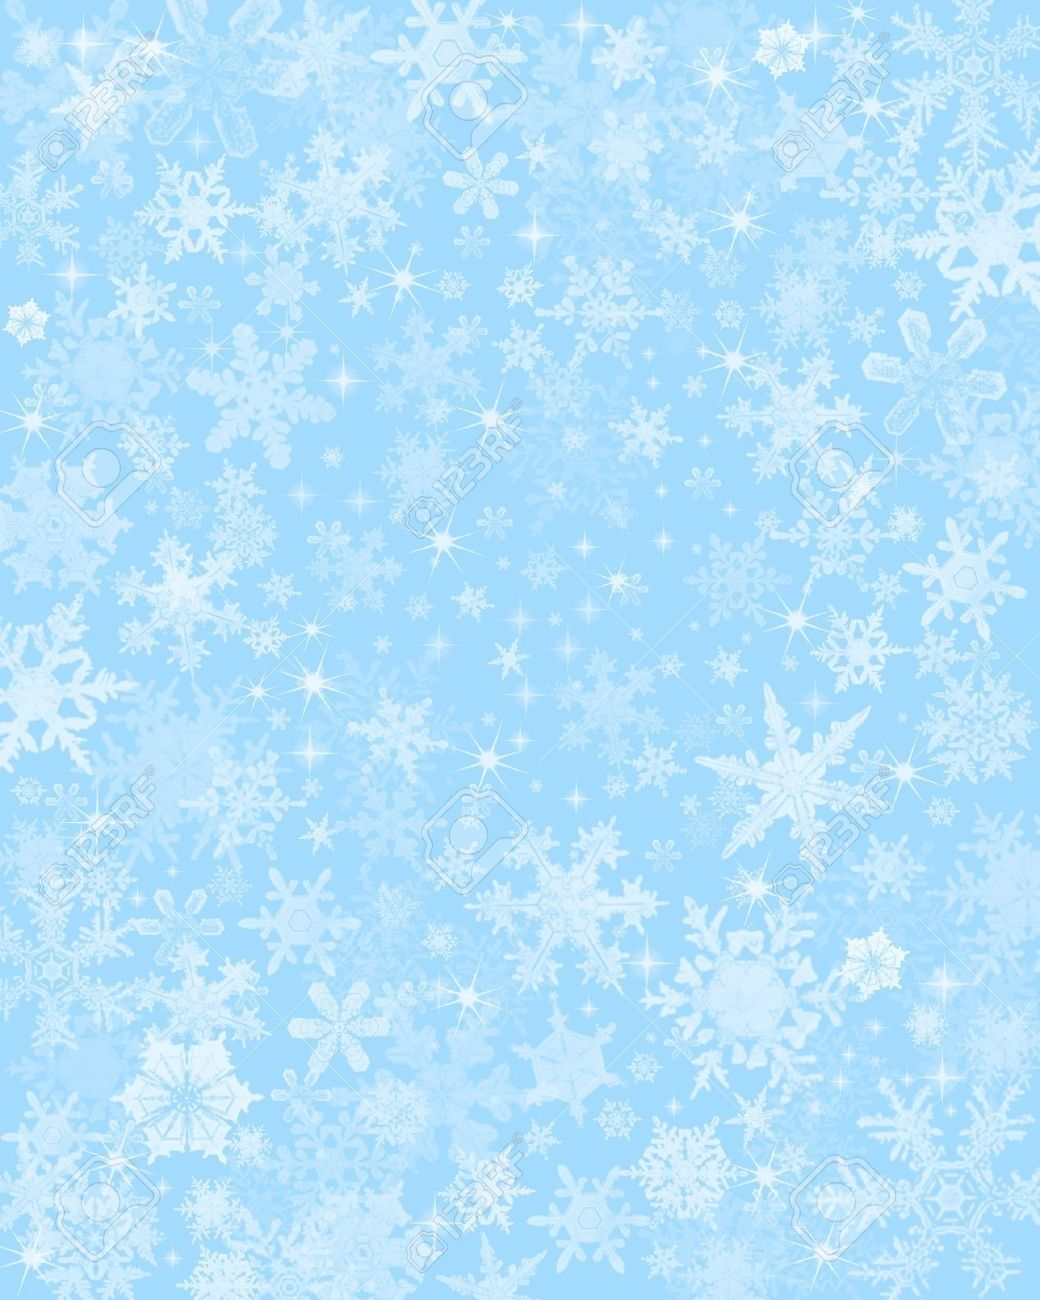 Light Blue And Beige Living Room: Snow Flakes On A Light Blue Background. Stock Photo